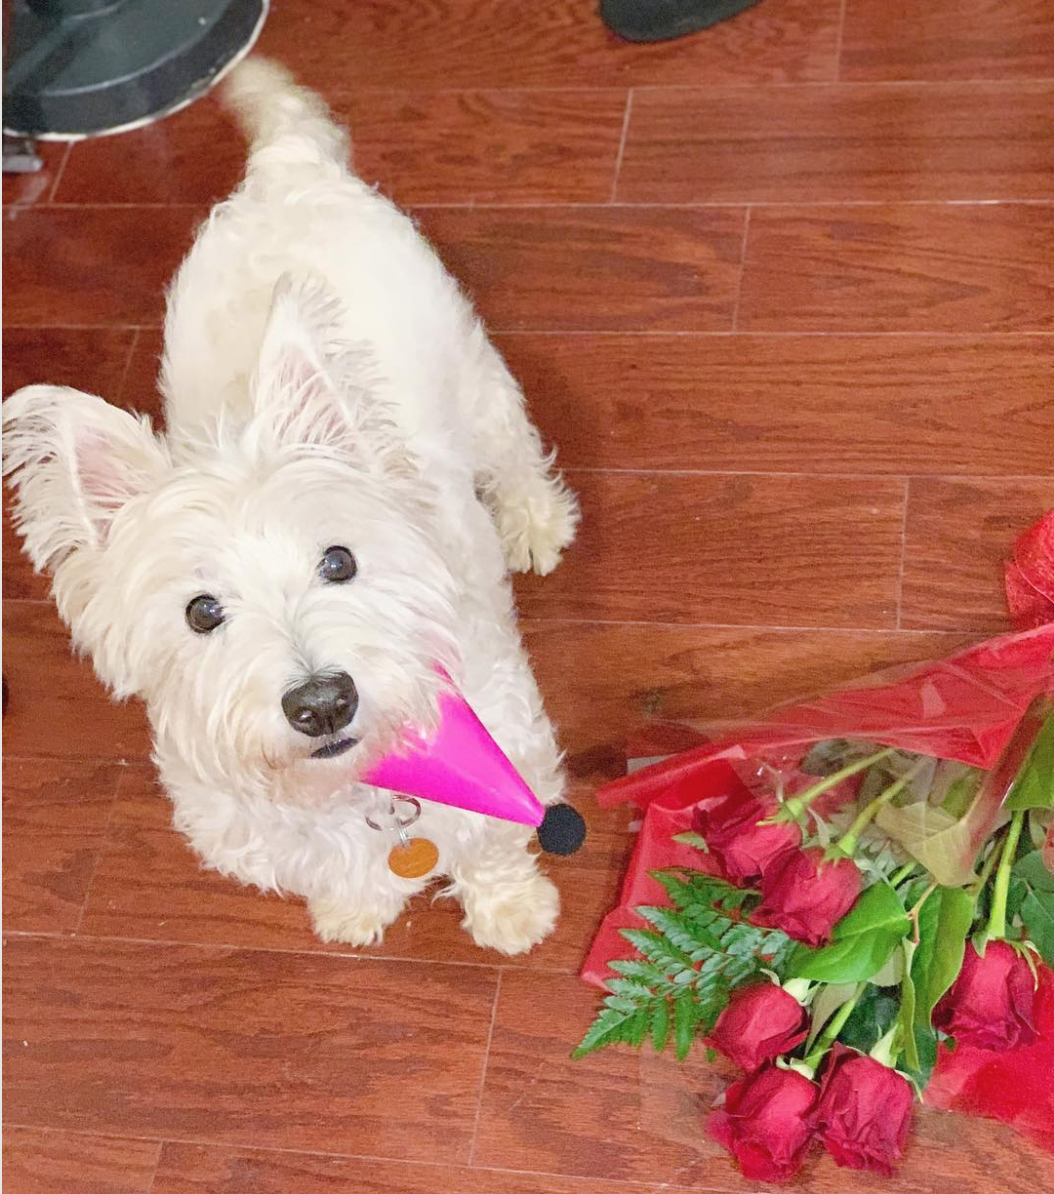 Roses are red, violets are blue,{ } we love this dog and you should too! (Image via @gibbs_the_westie)